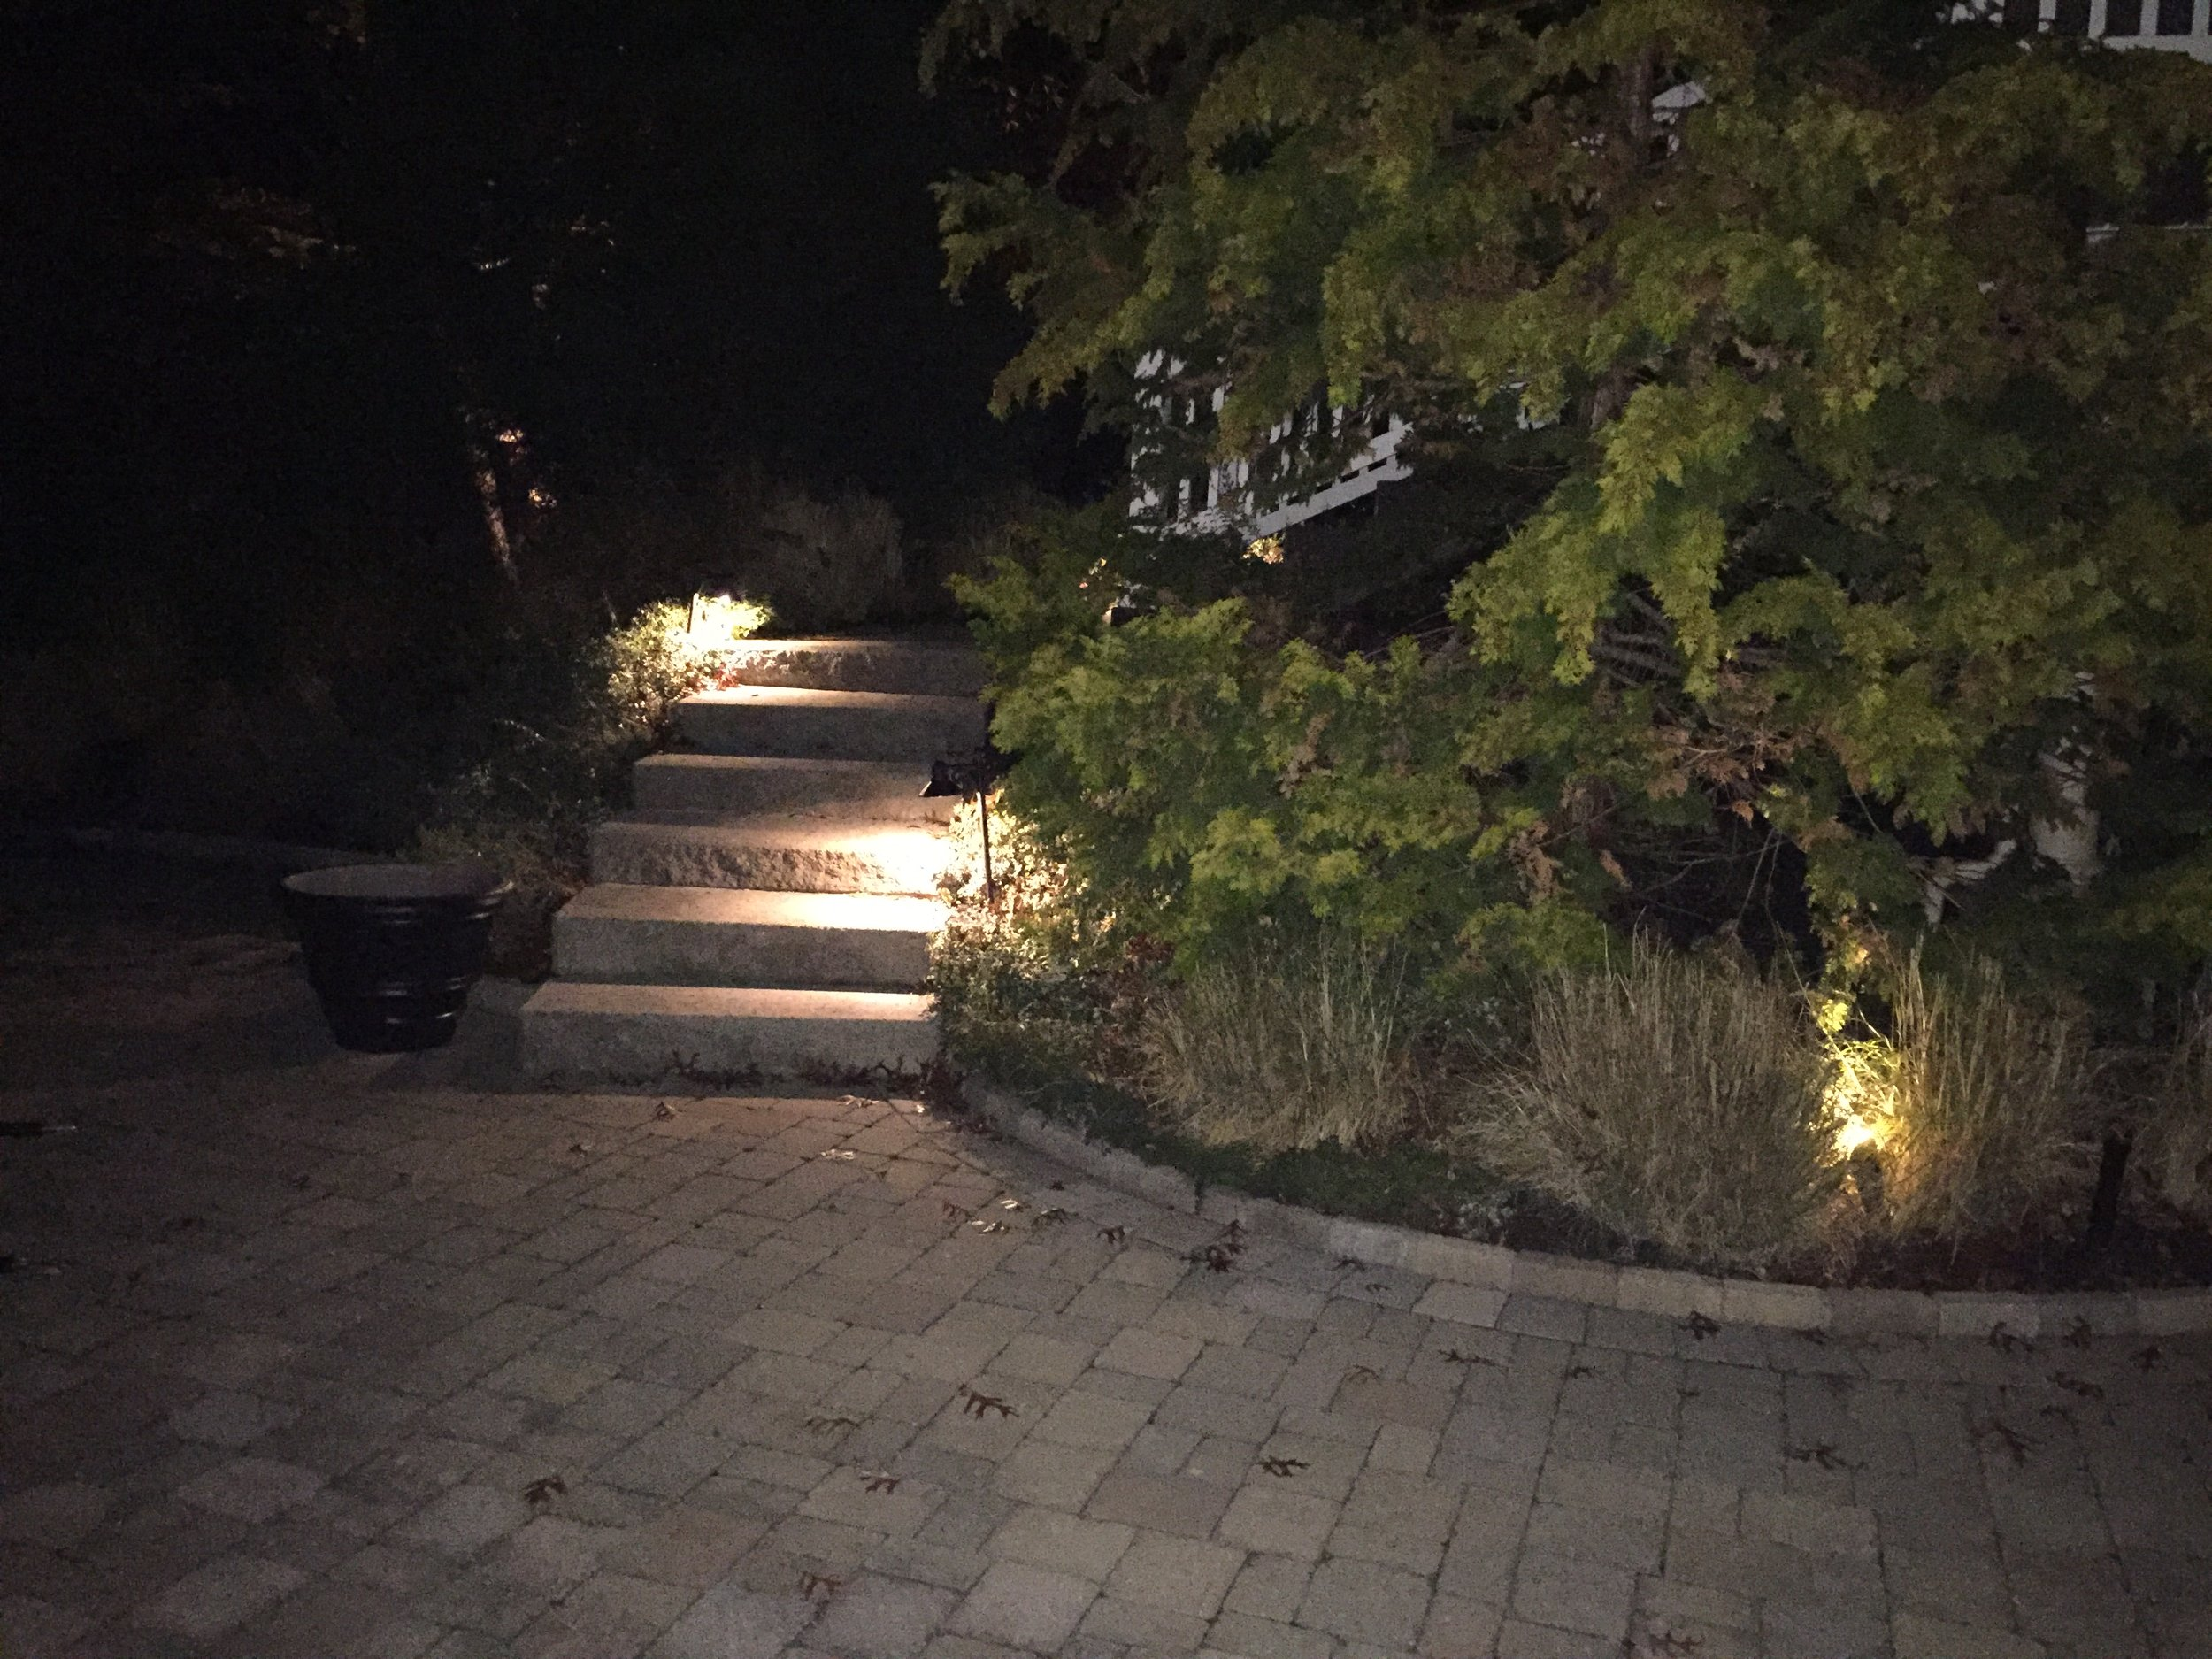 Professional outdoor LED lighting installationcompany in Long Island, NY